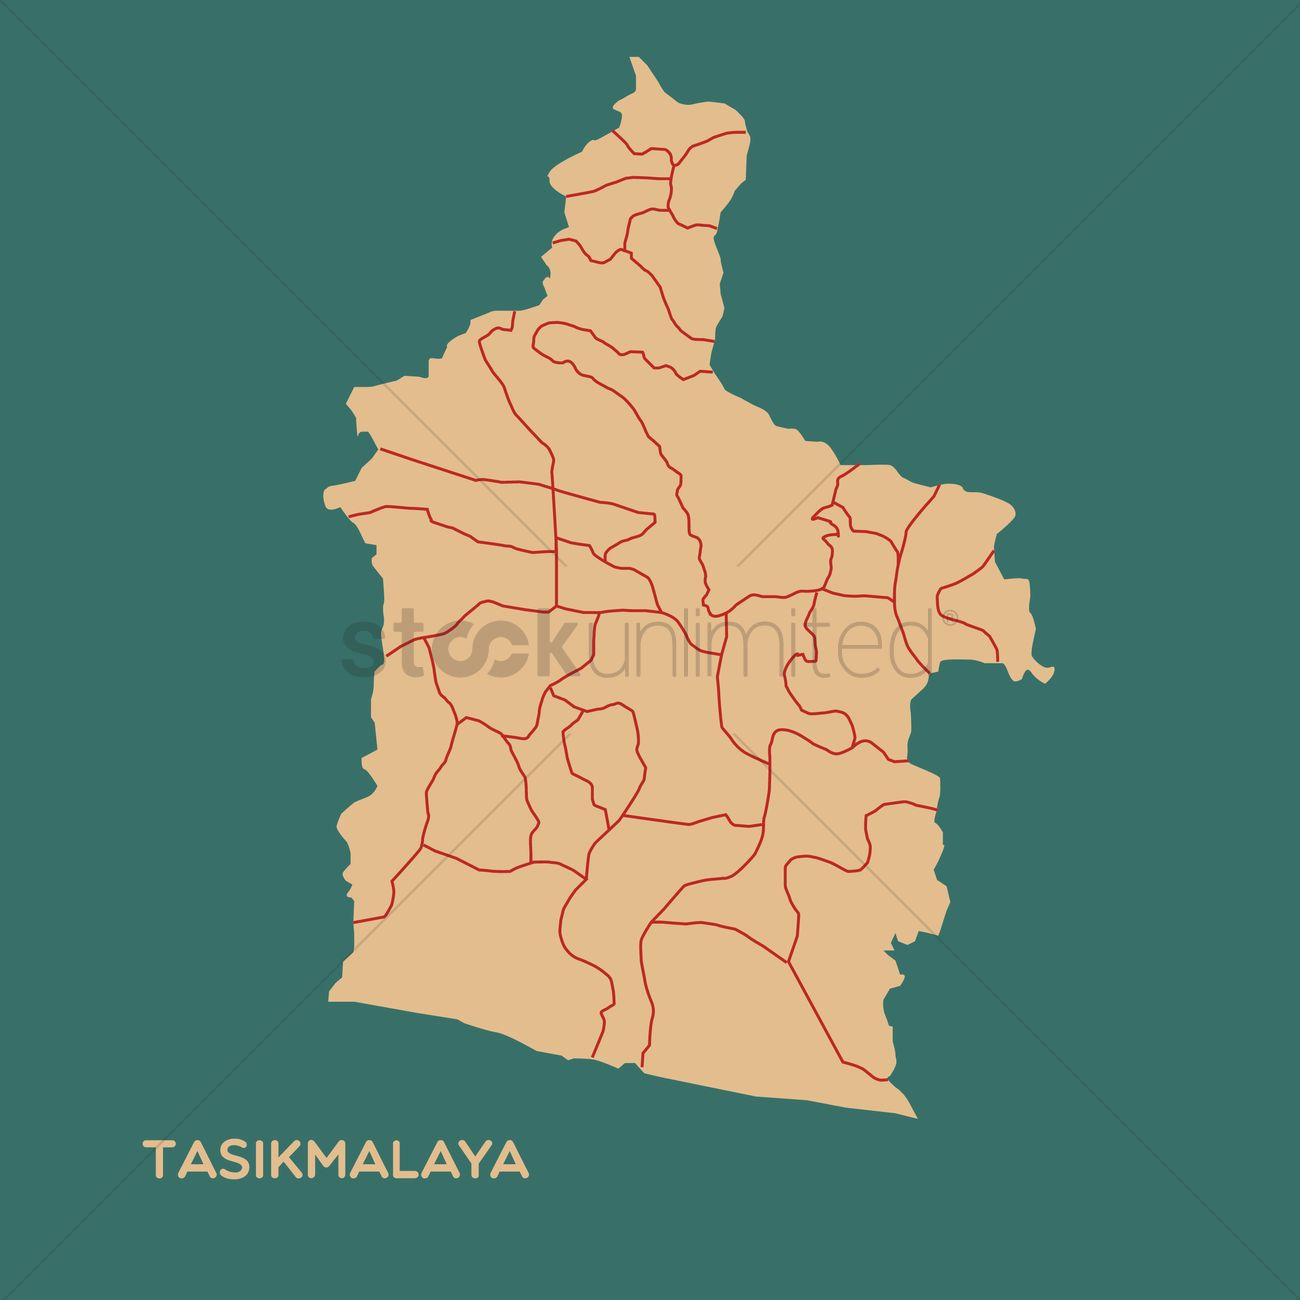 Map of tasikmalaya Vector Image 1479813 StockUnlimited